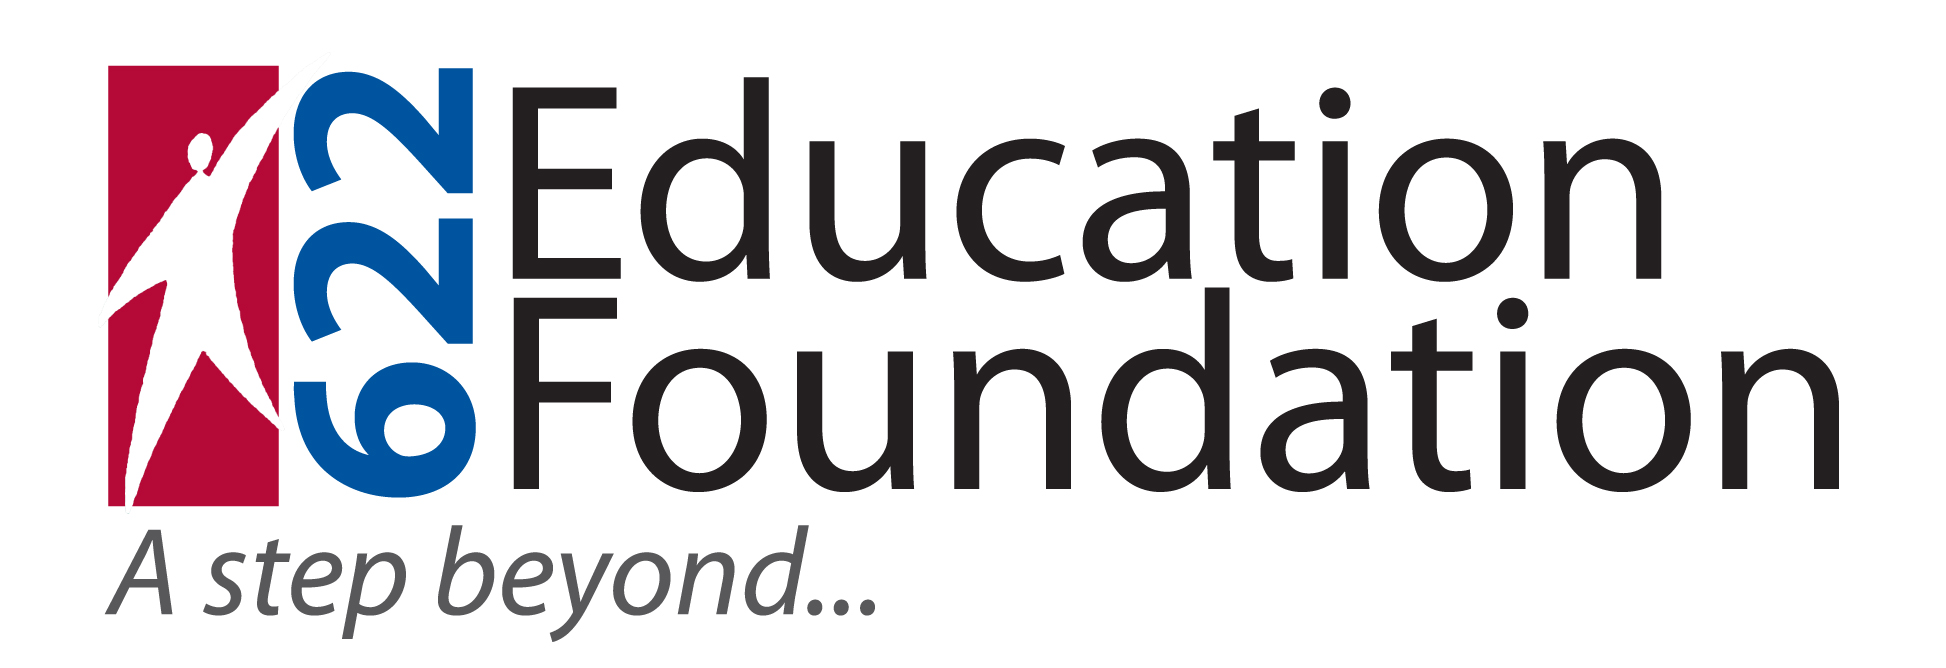 622 Education Foundation